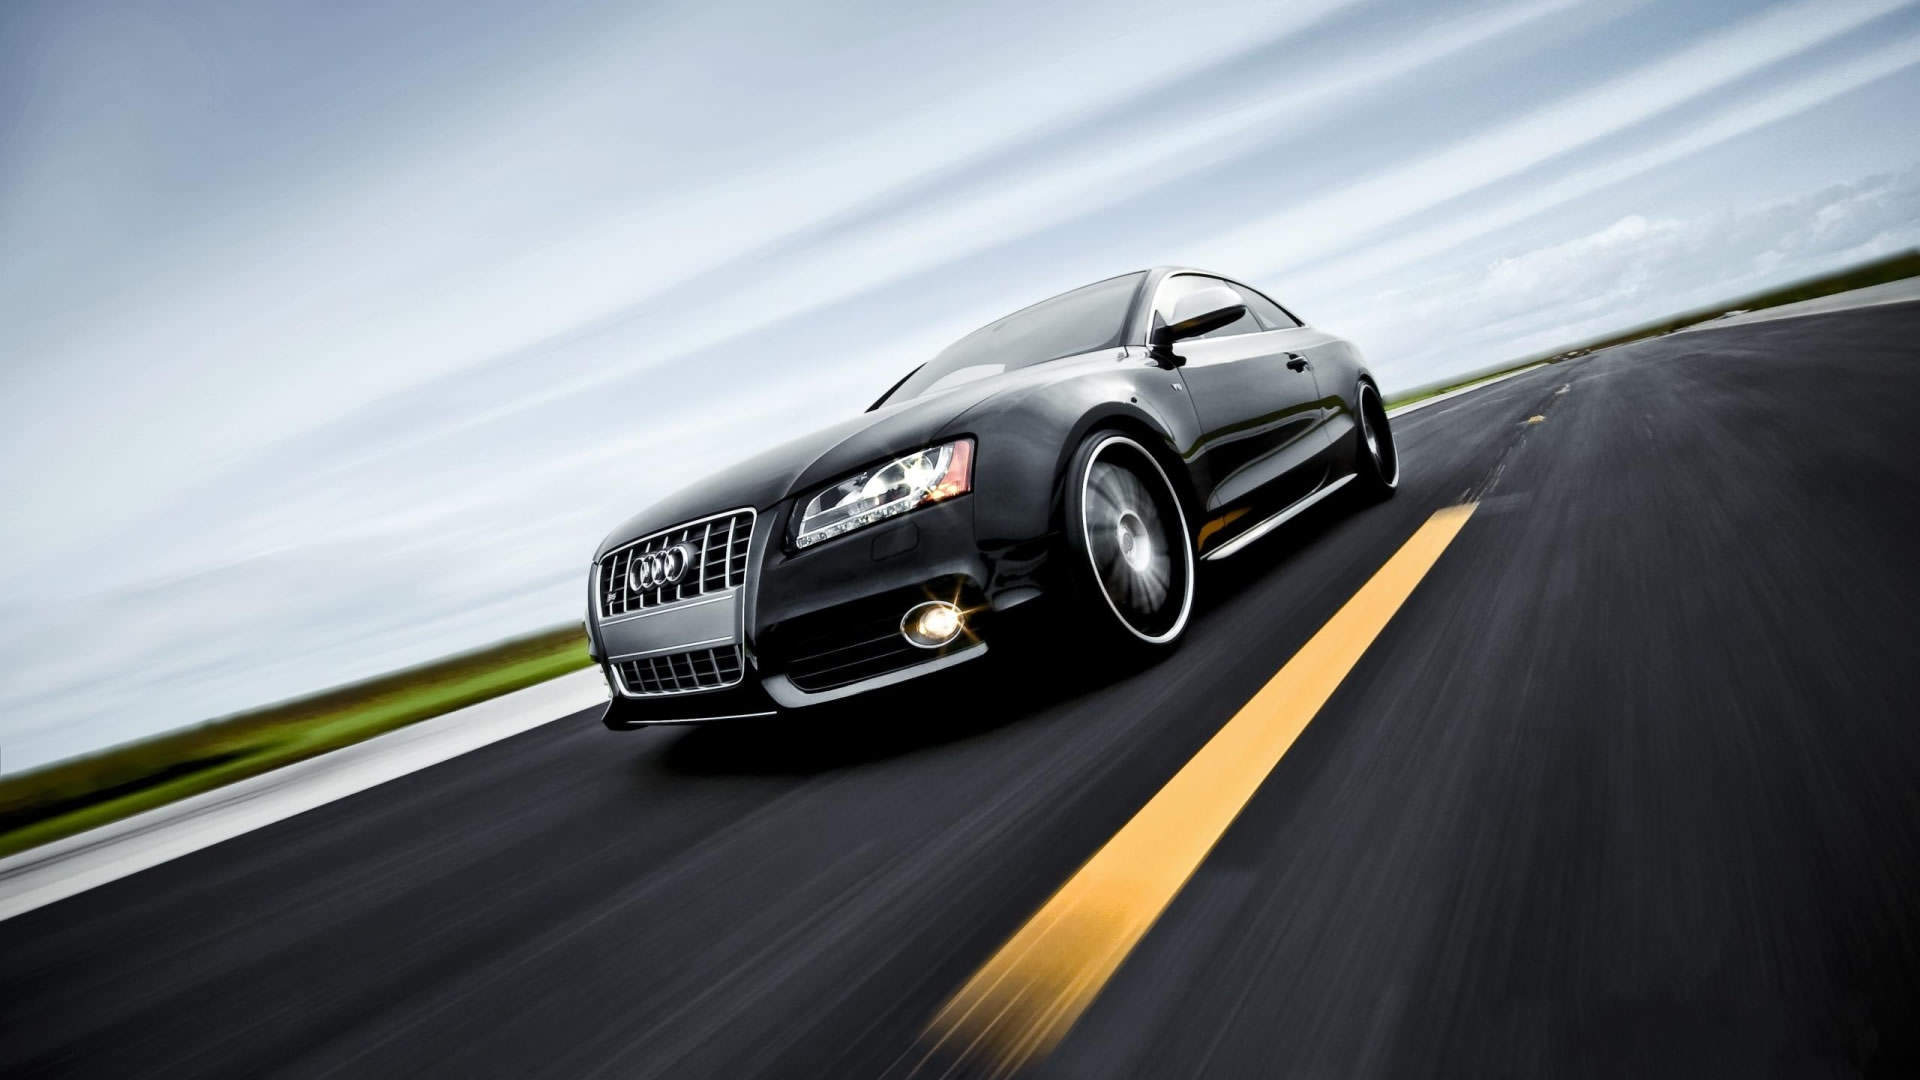 Wallpapers audi wallpaper cartoon 4minute coupe car 342298